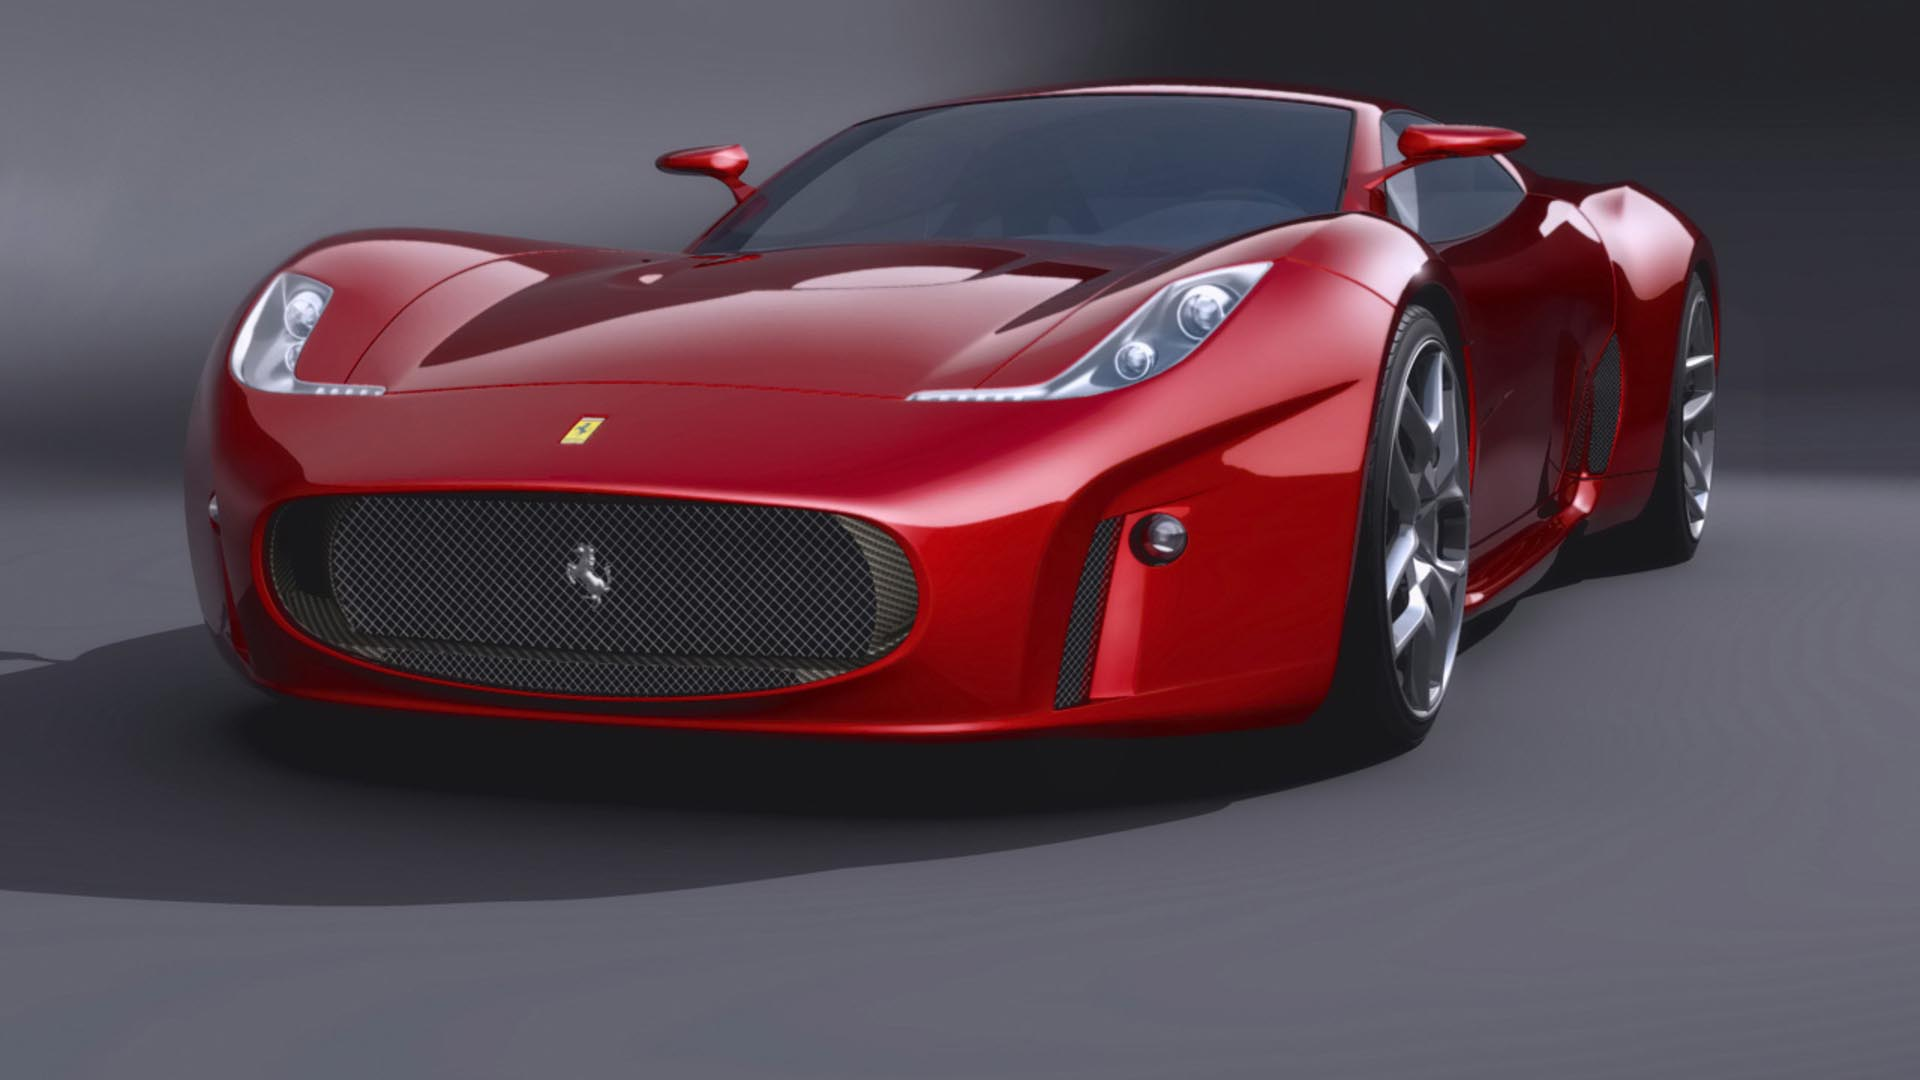 Top Ferrari Exotic Car Wallpaper   SA Wallpapers 1920x1080